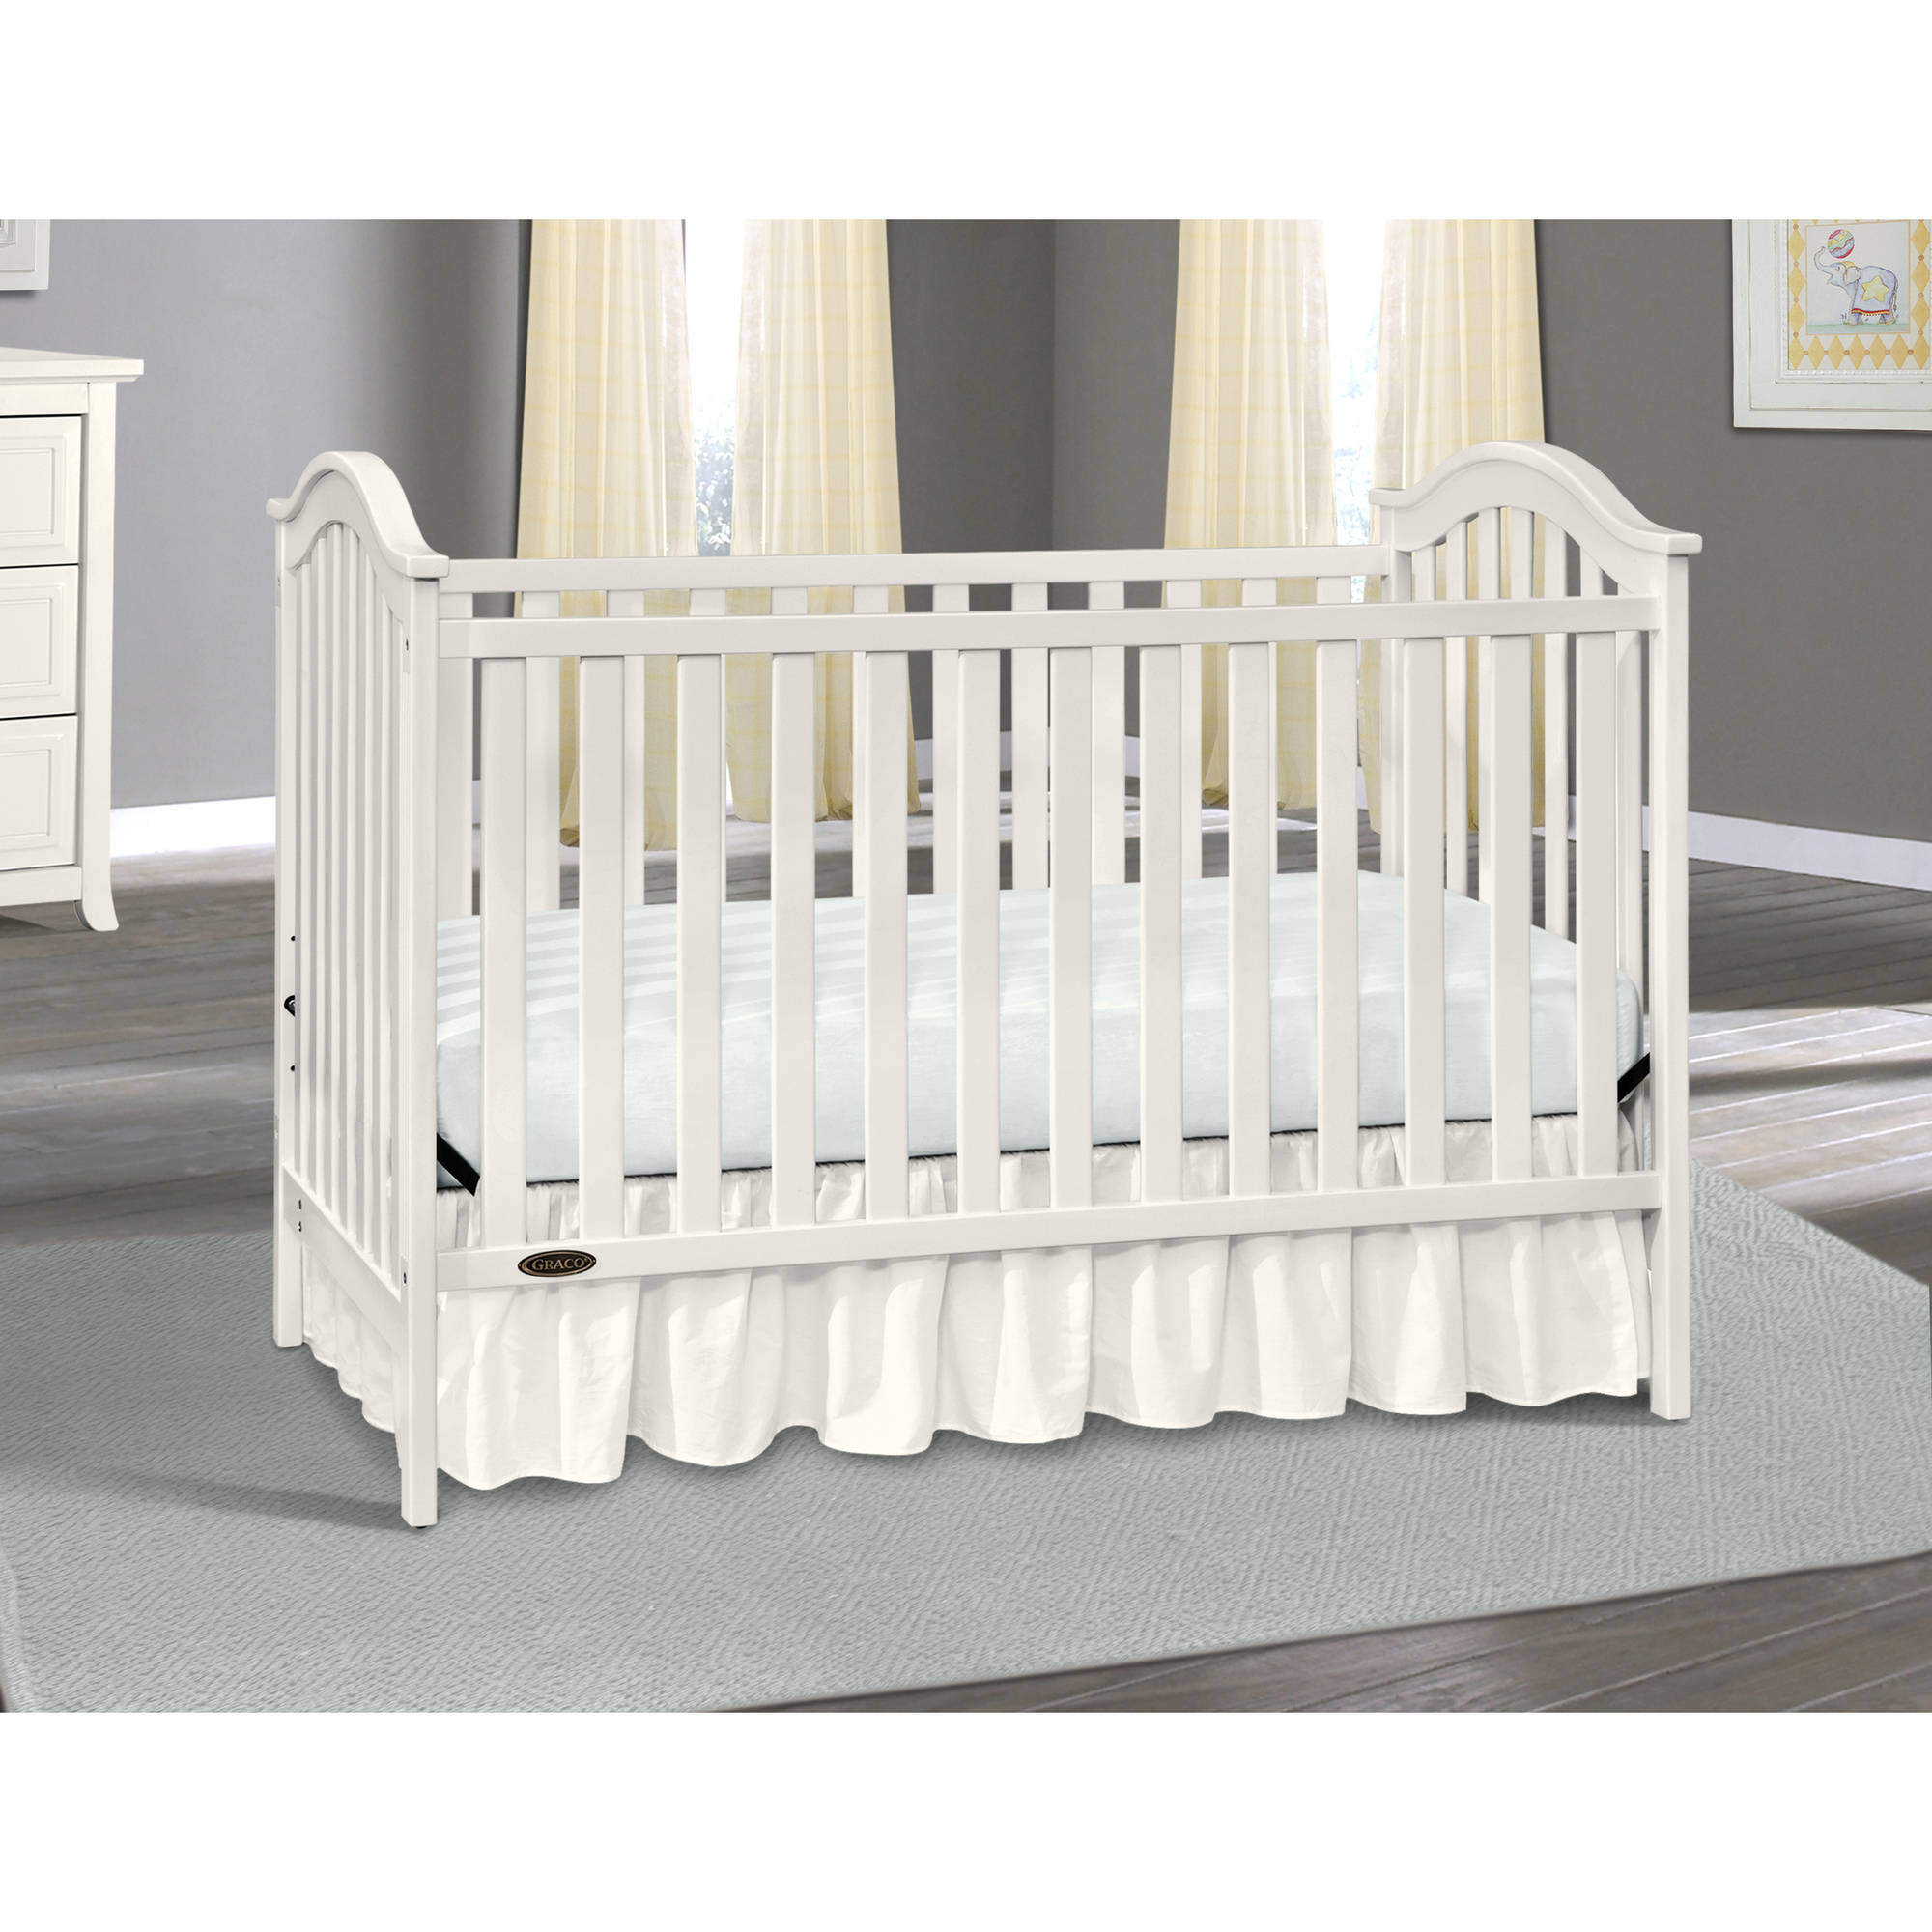 Ideal Graco Classic 3 in 1 Convertible Baby Crib White timeless design  SV45